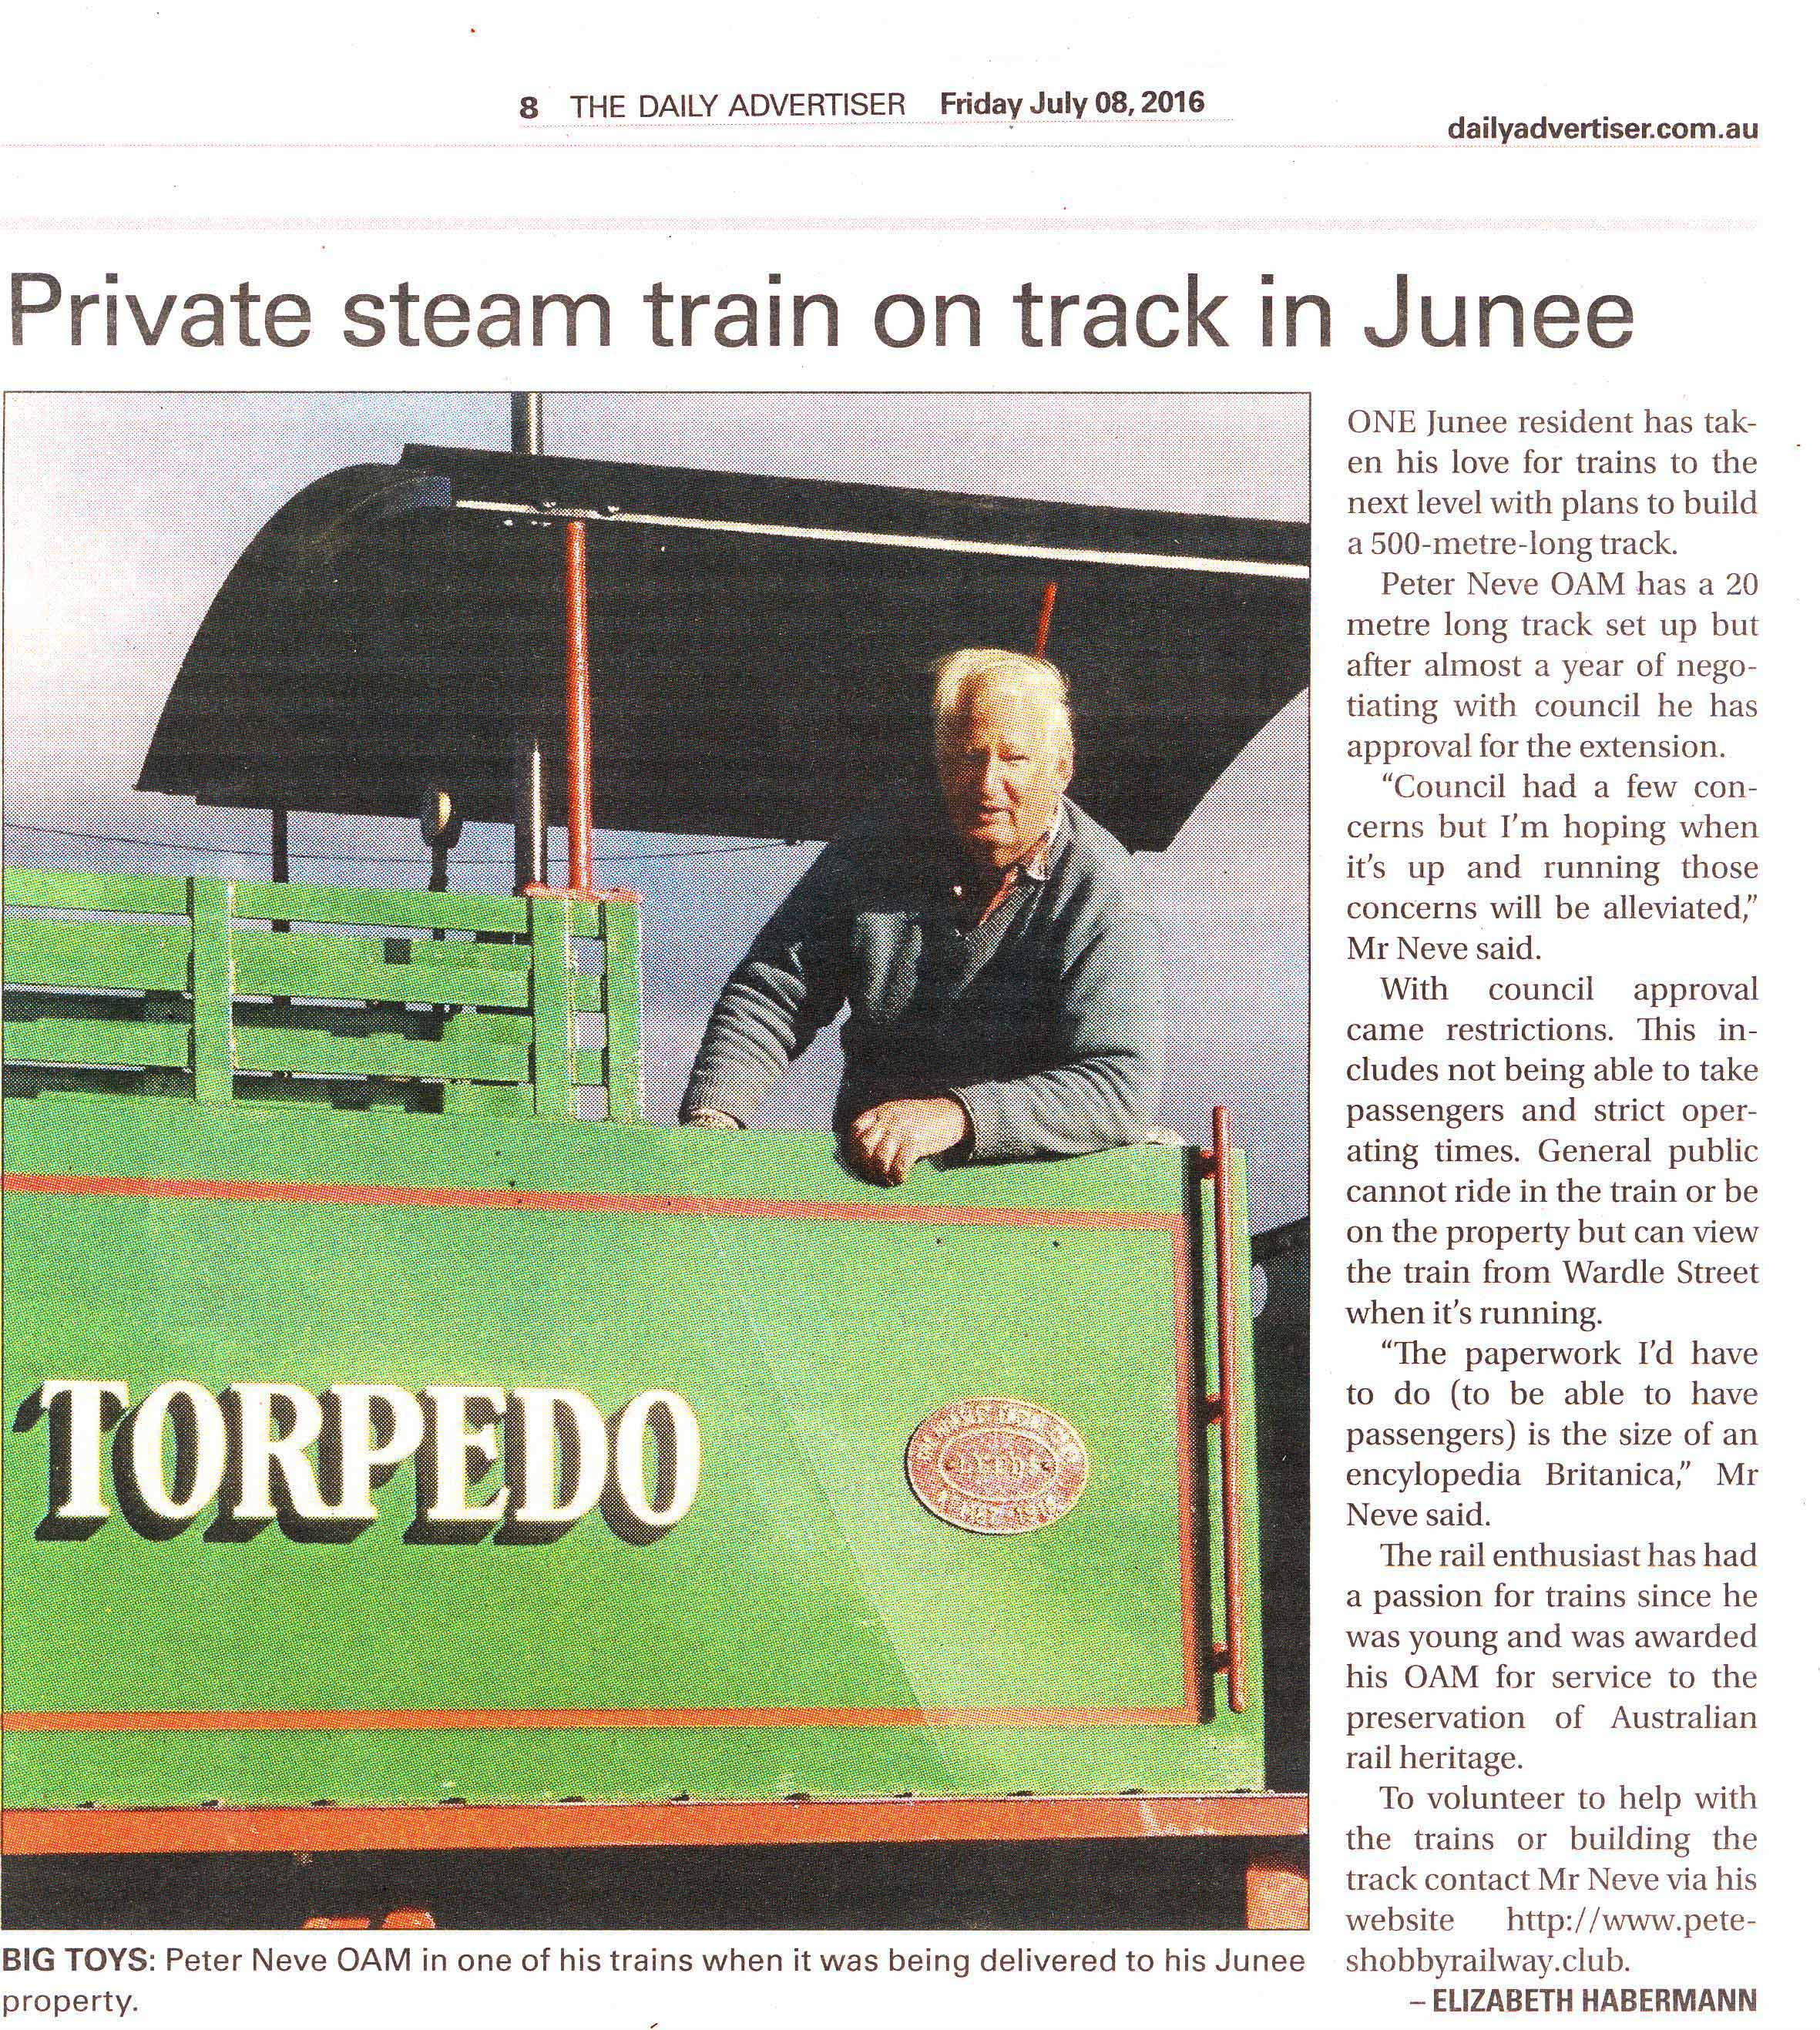 Peter Neve OAM is setting up his own train track in Junee